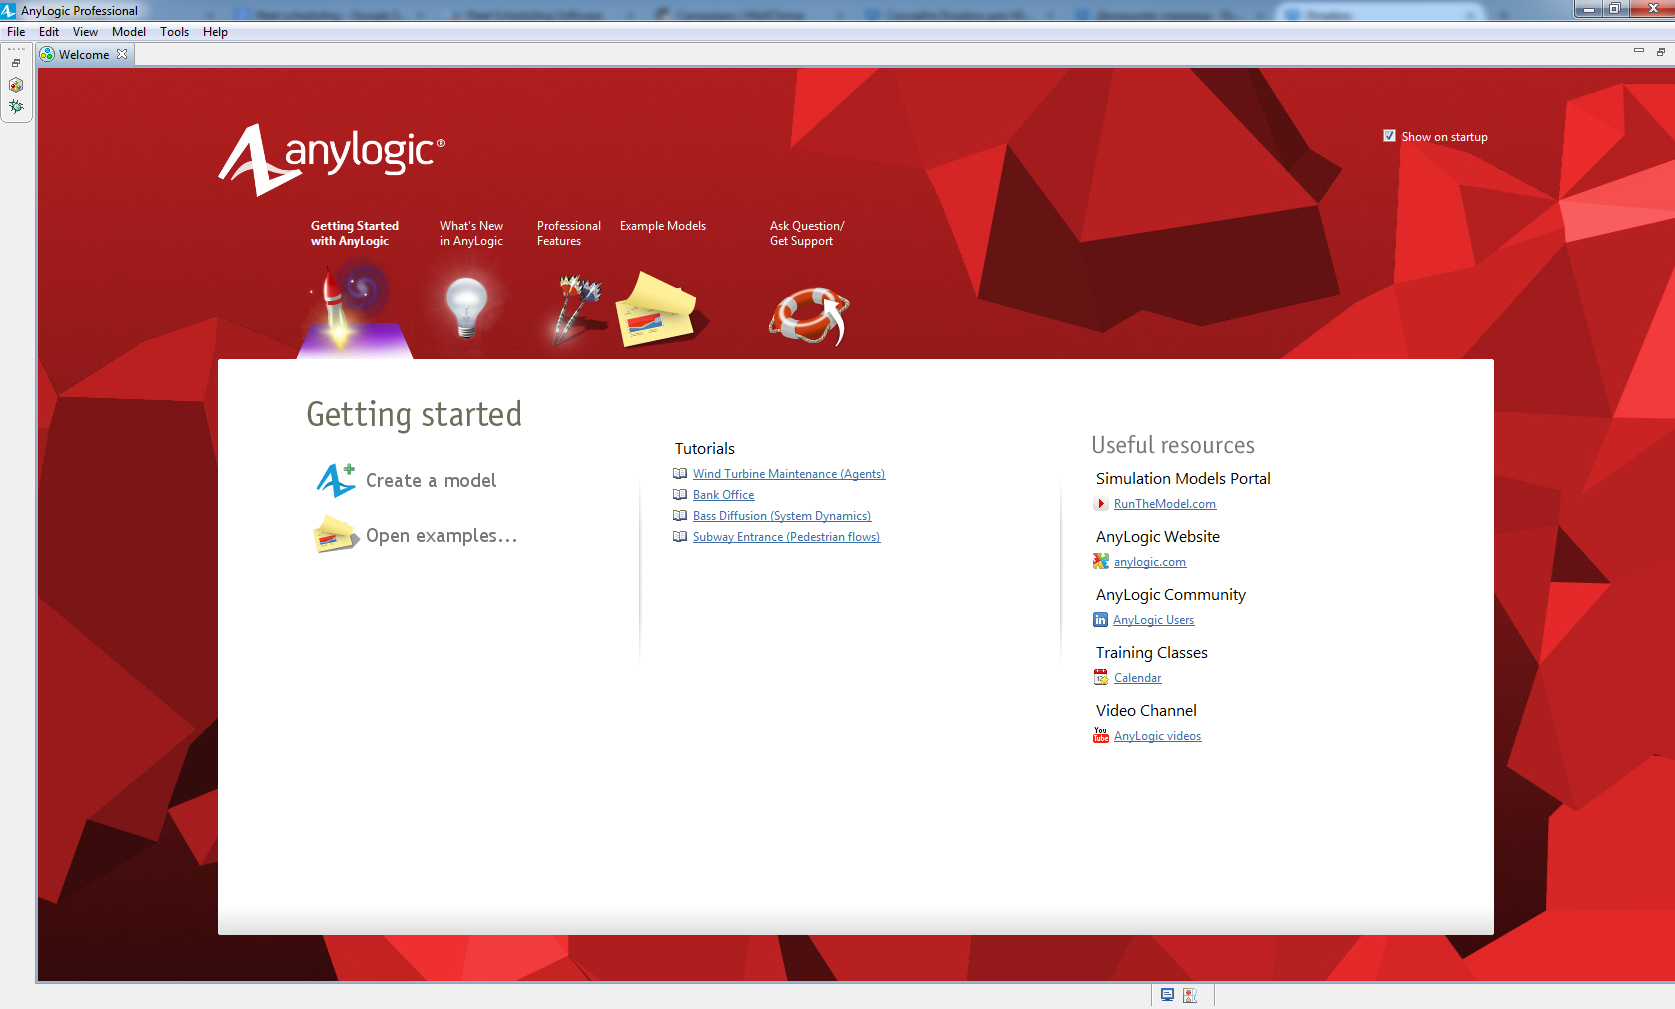 AnyLogic Welcome Screen